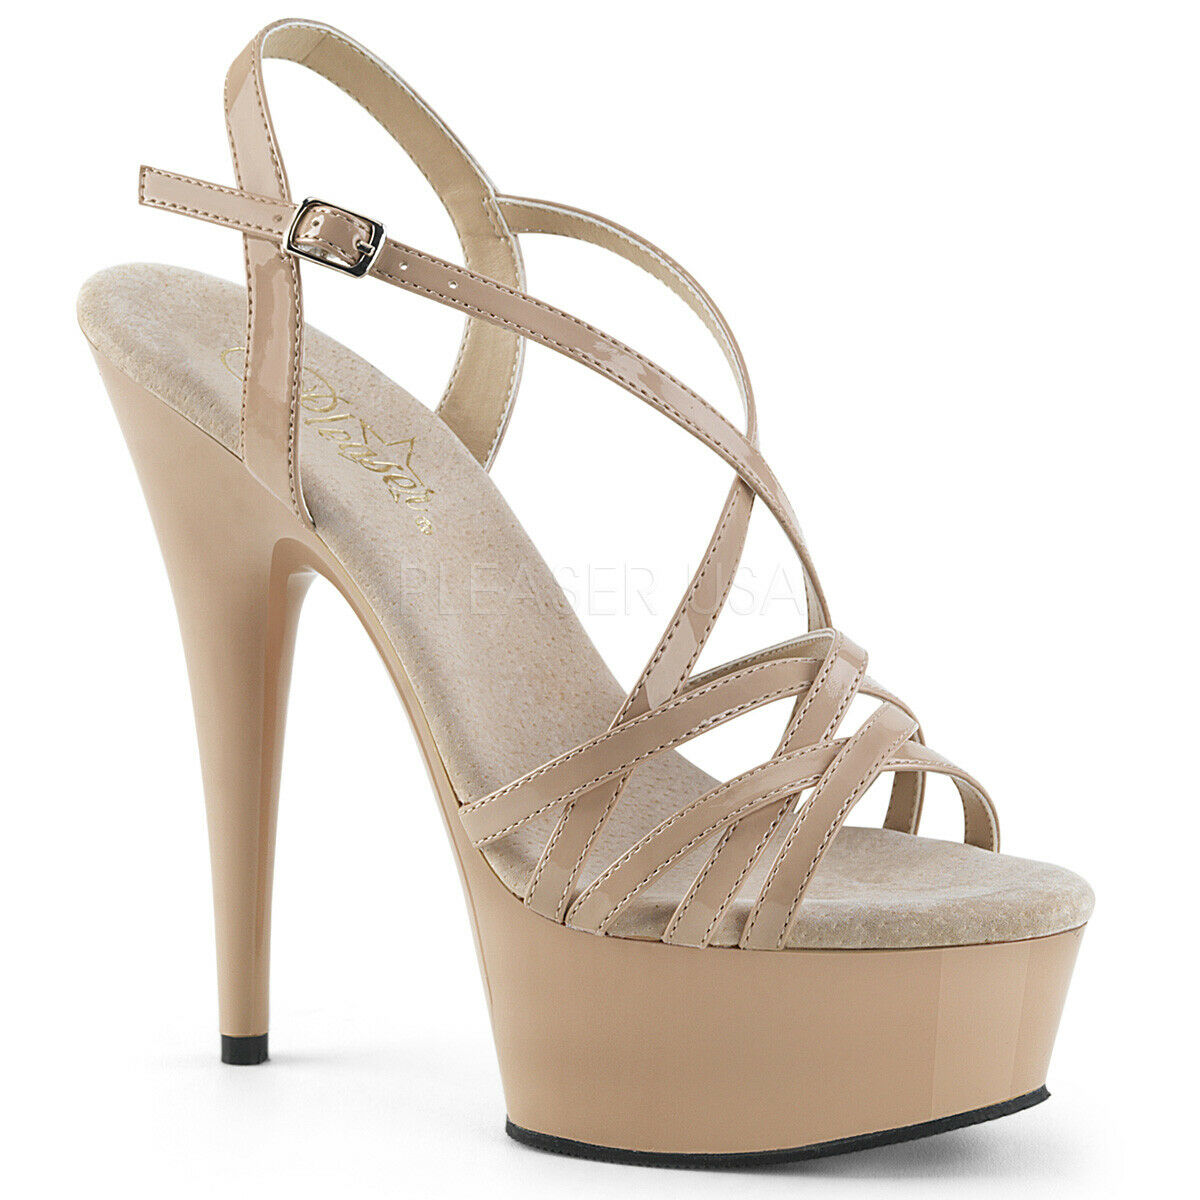 Pleaser Delight-613 Nude Ankle Strap Sandal Overlapping Criss Cross - UK 3 SALE